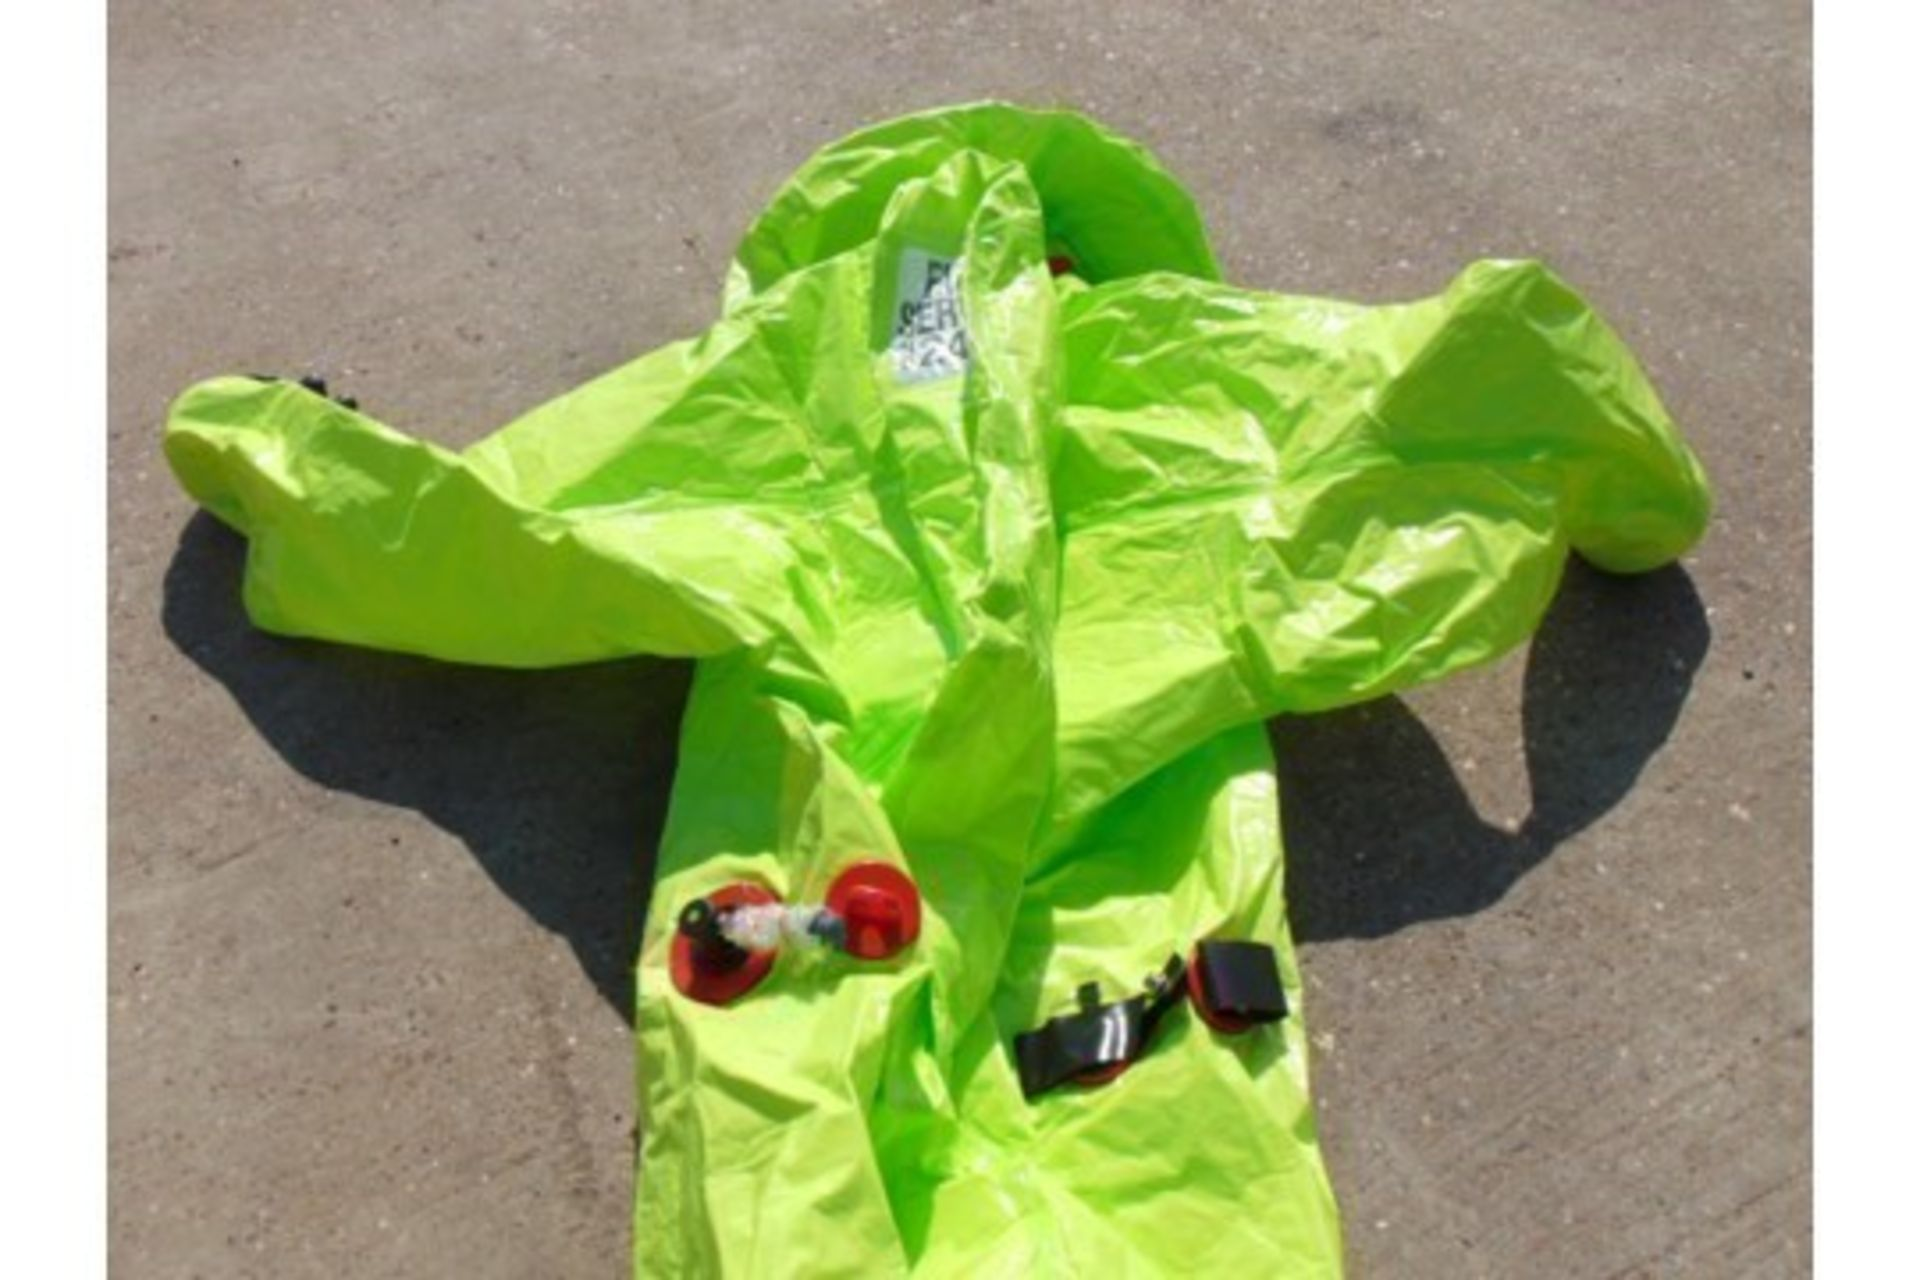 Lot 348 - 1 x Unissued Respirex Tychem TK Gas-Tight Hazmat Suit Type 1A with Attached Boots and Gloves. Medium